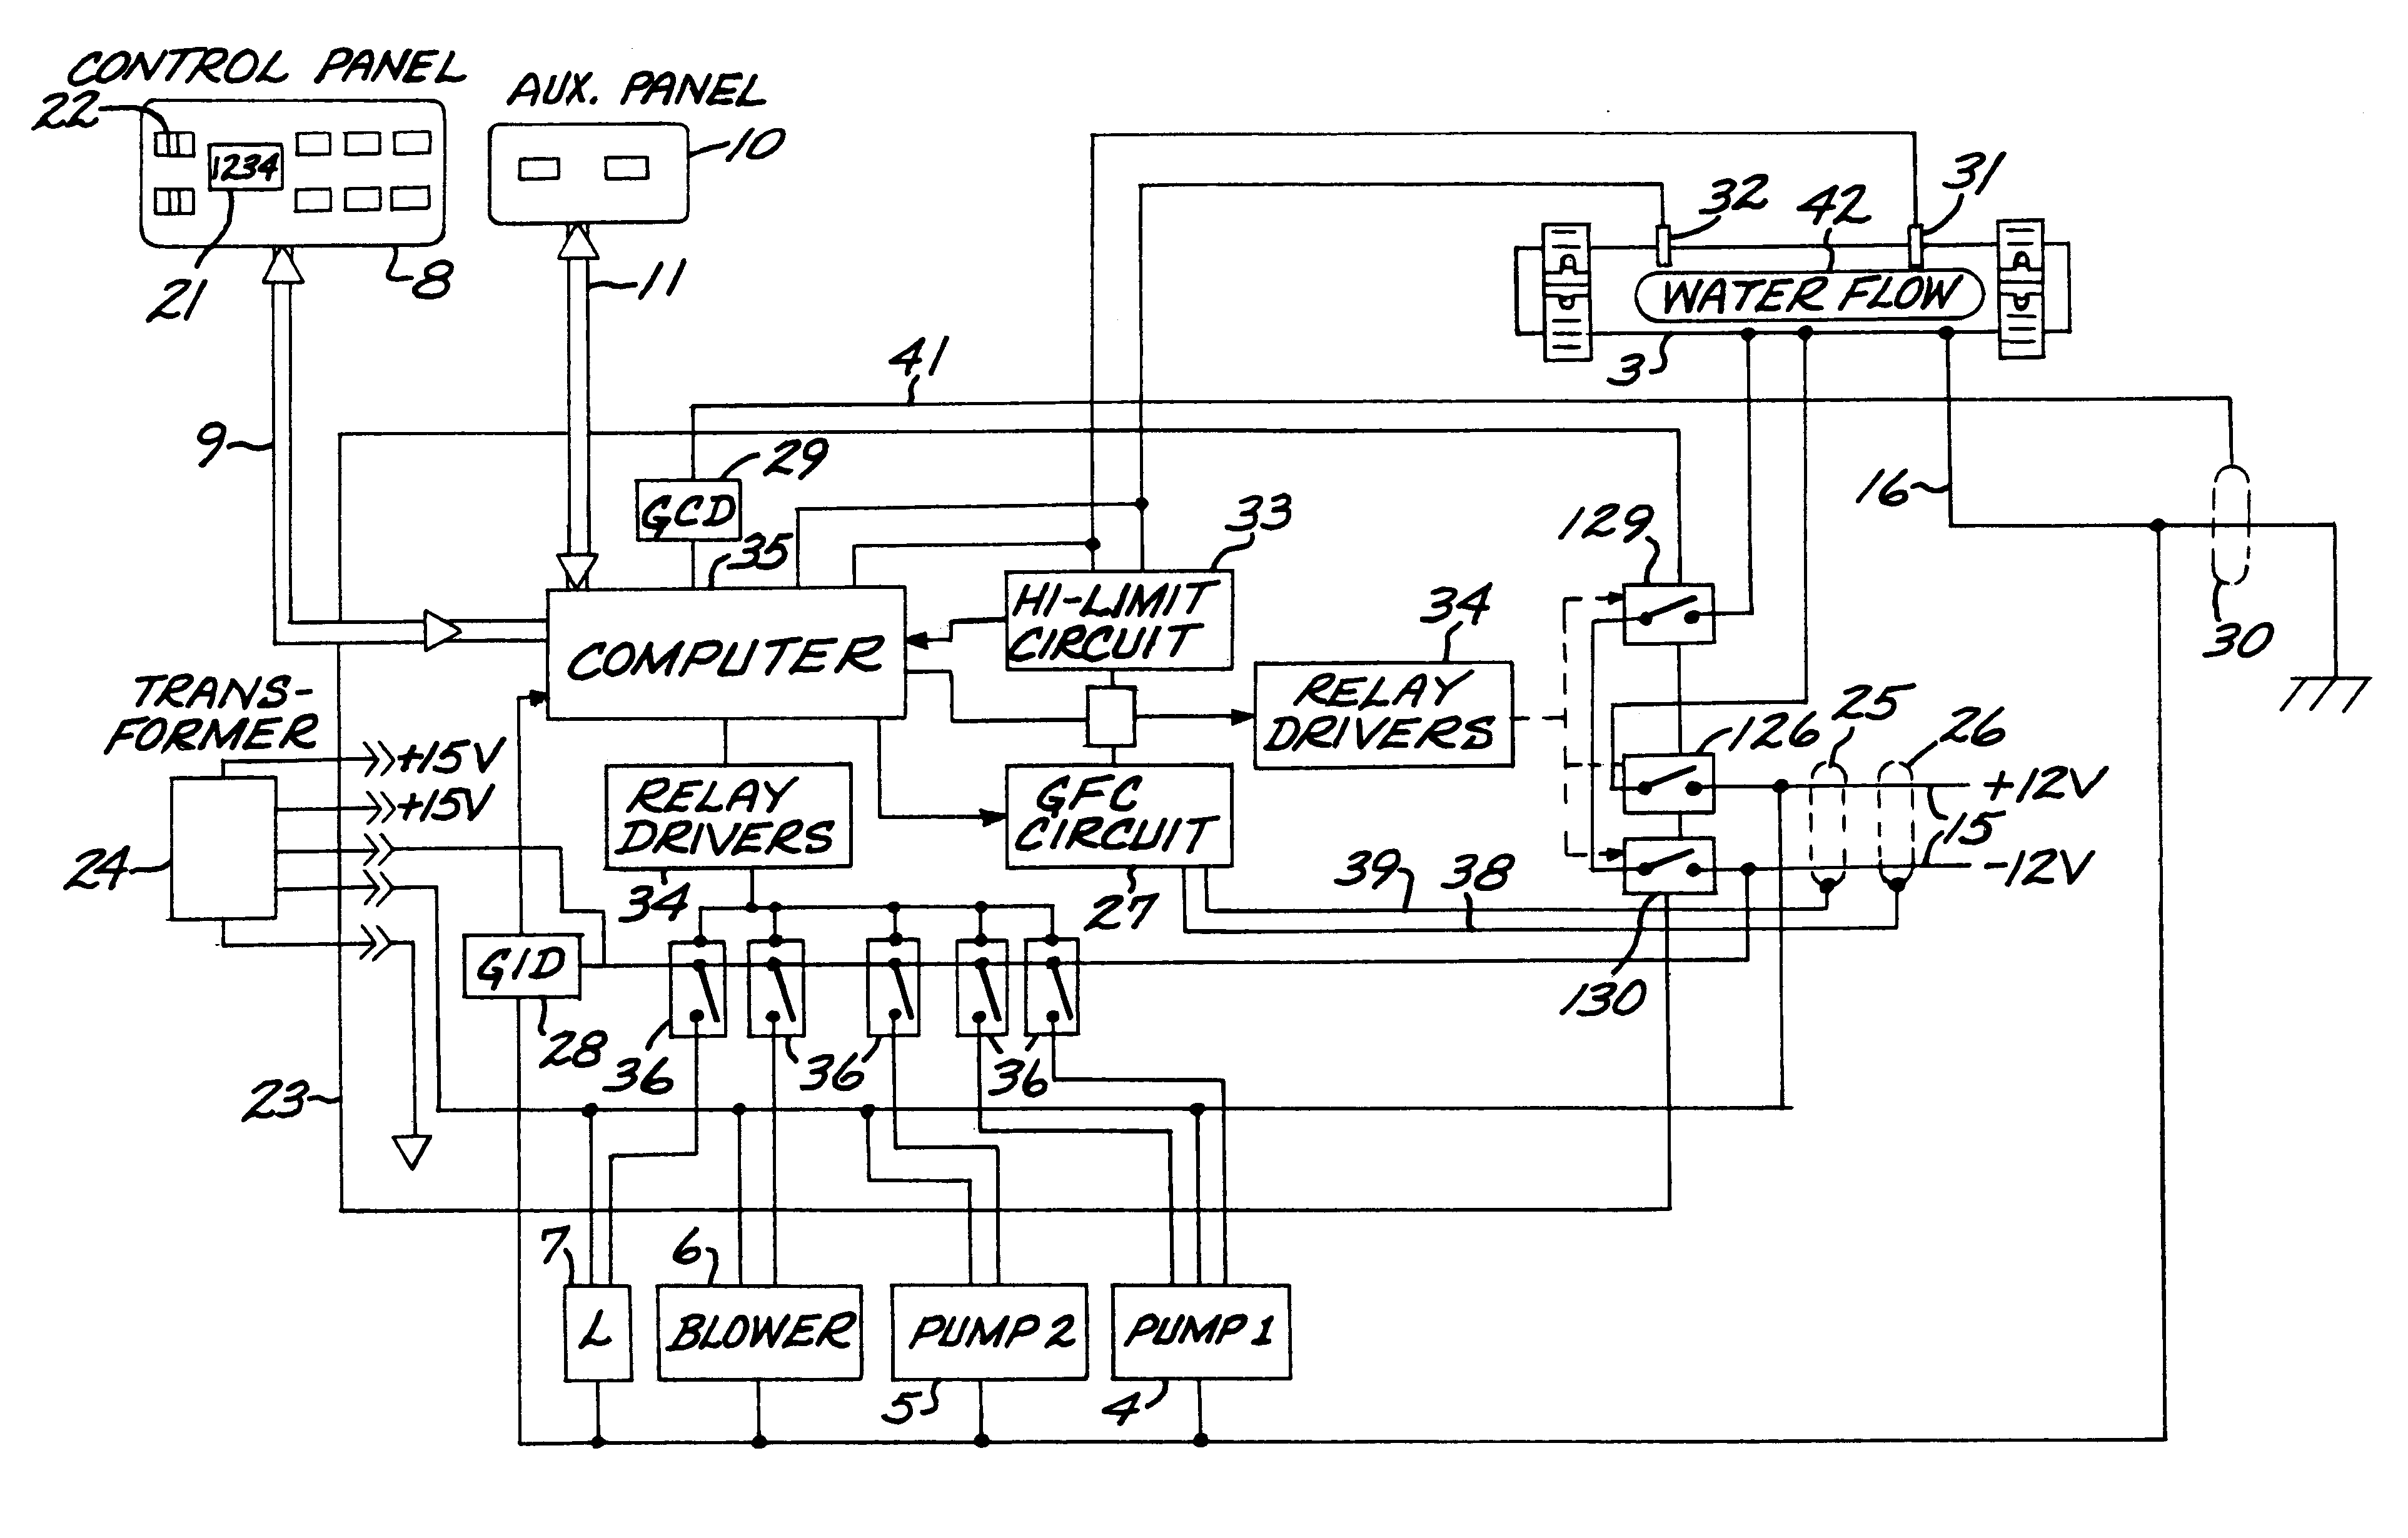 US06253121 20010626 D00000 patent us6253121 control system for bathers with ground thermospa wiring diagram at crackthecode.co